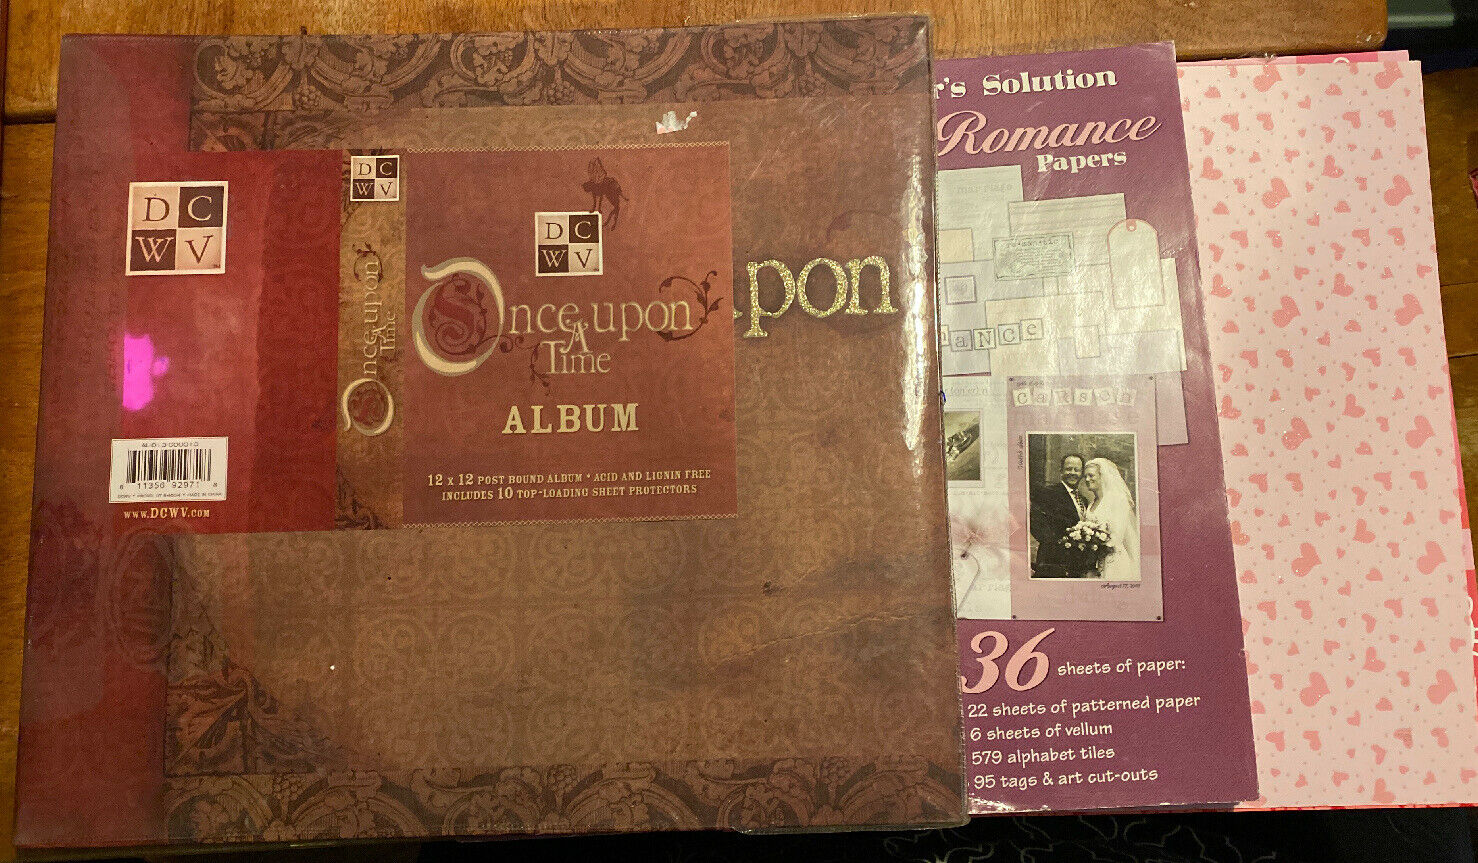 Diecuts With A View 12 x 12-inch Once Upon A Time Post Bound Album With